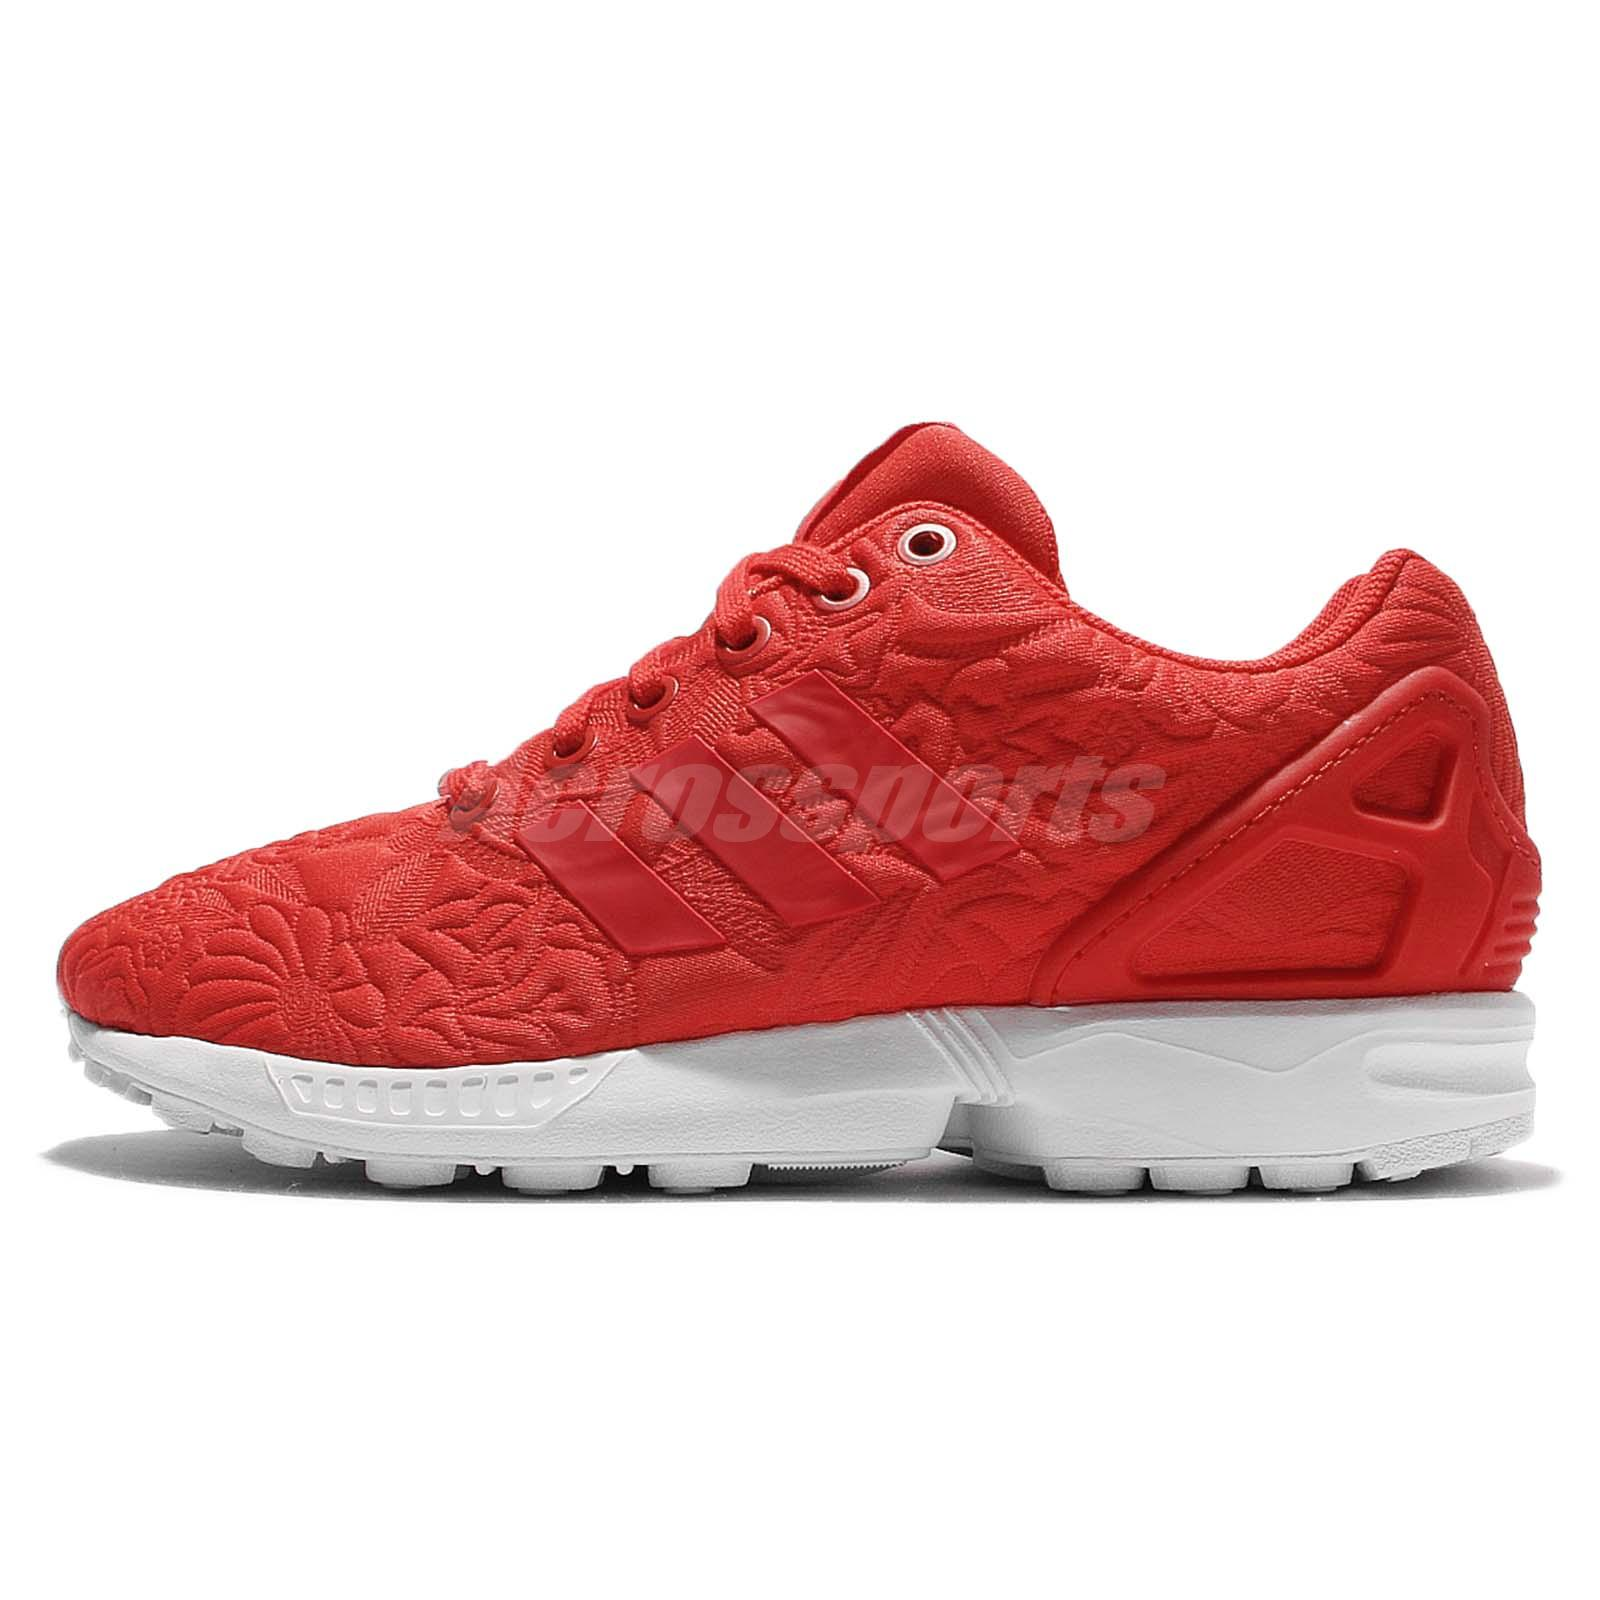 adidas originals zx flux all red